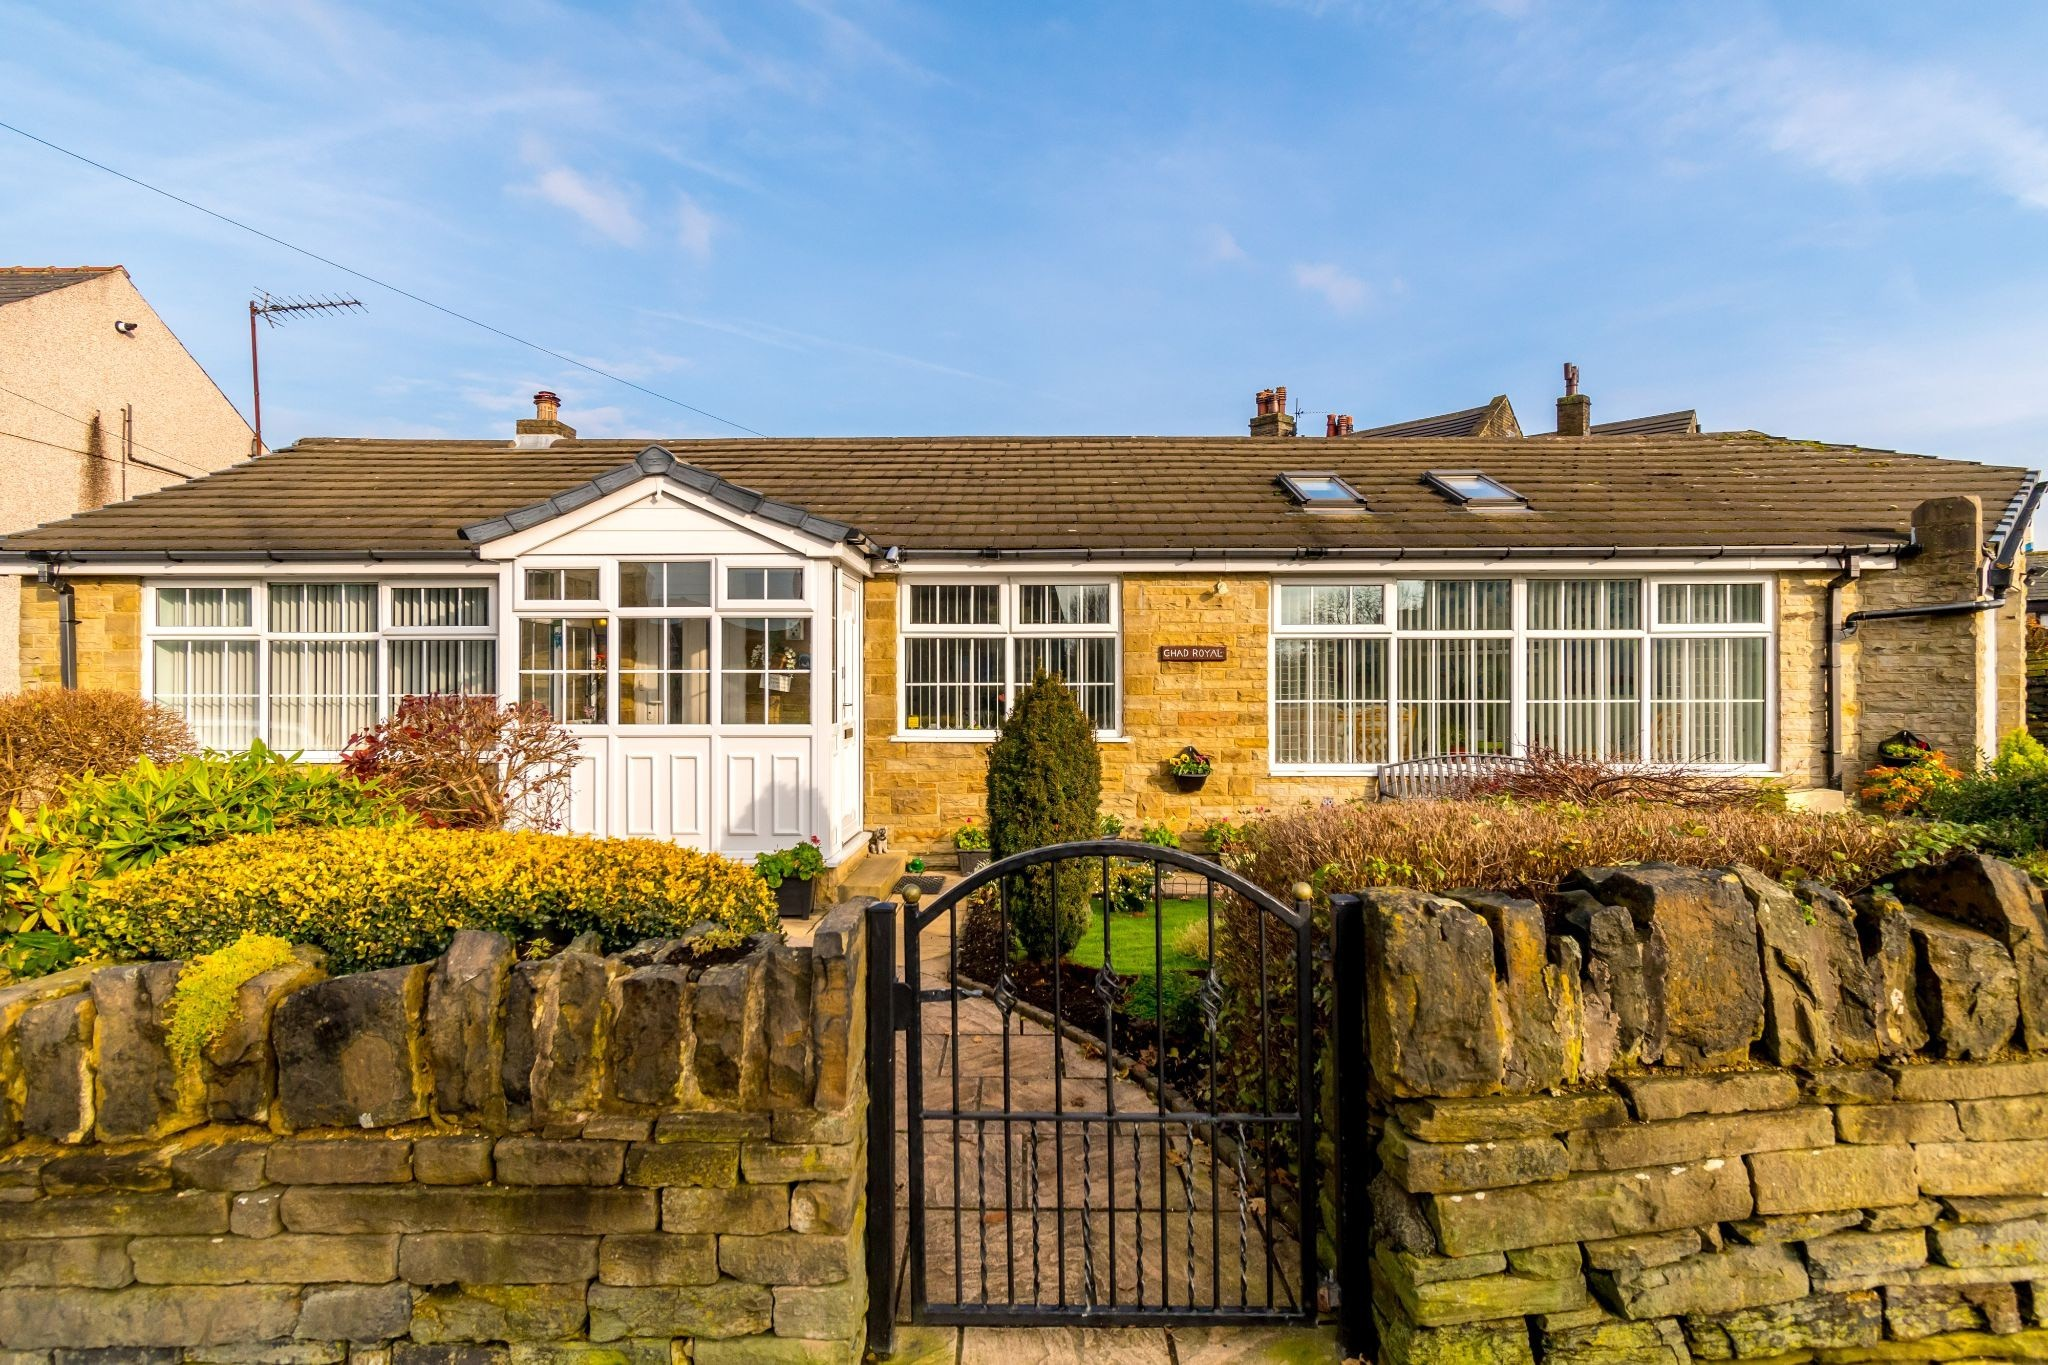 3 bedroom detached bungalow For Sale in Hove Edge - Frontage